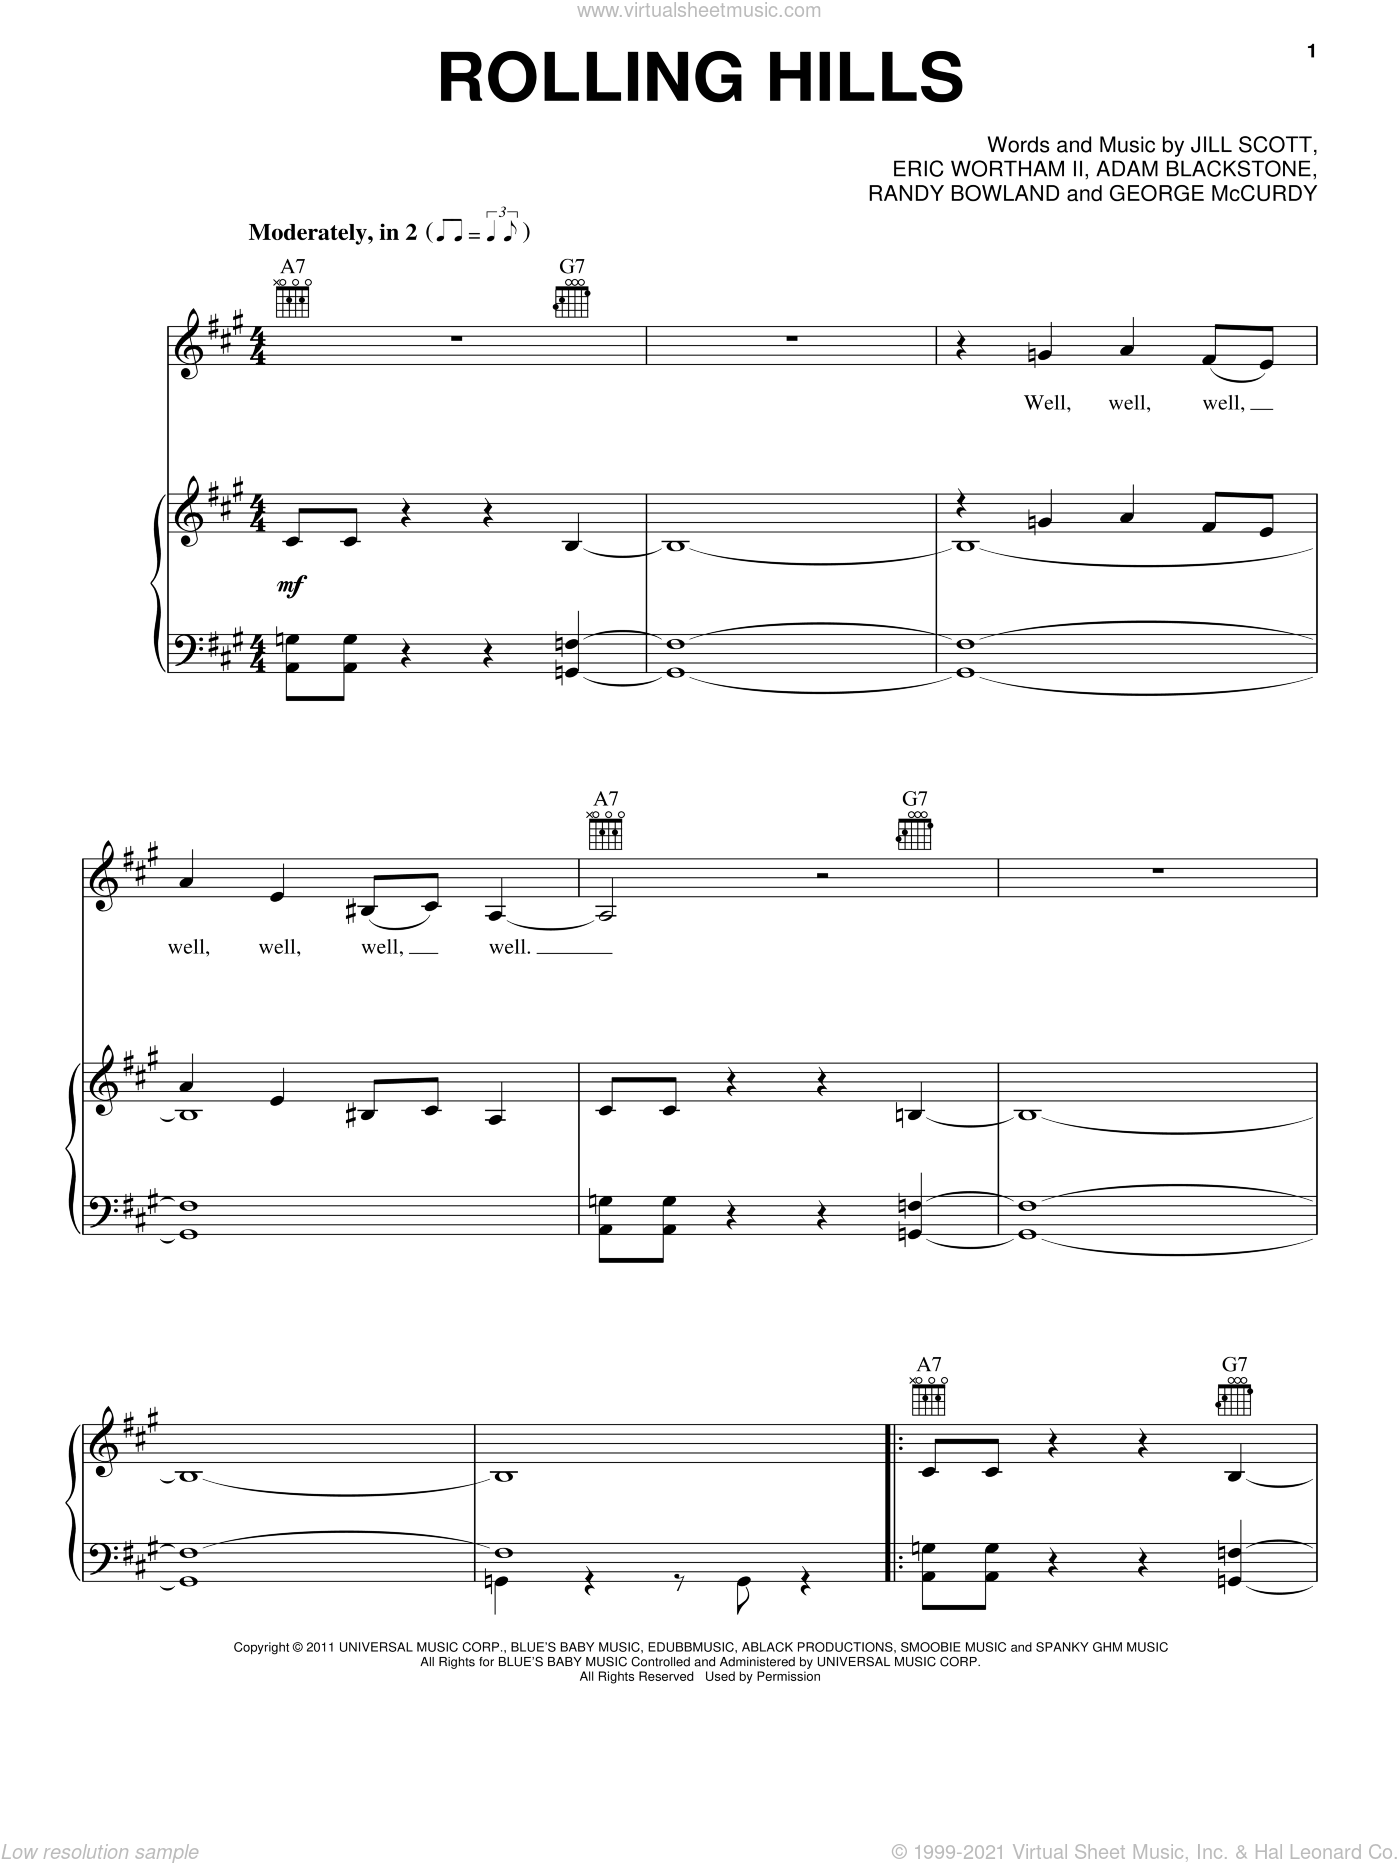 Rolling Hills sheet music for voice, piano or guitar by Randy Bowland